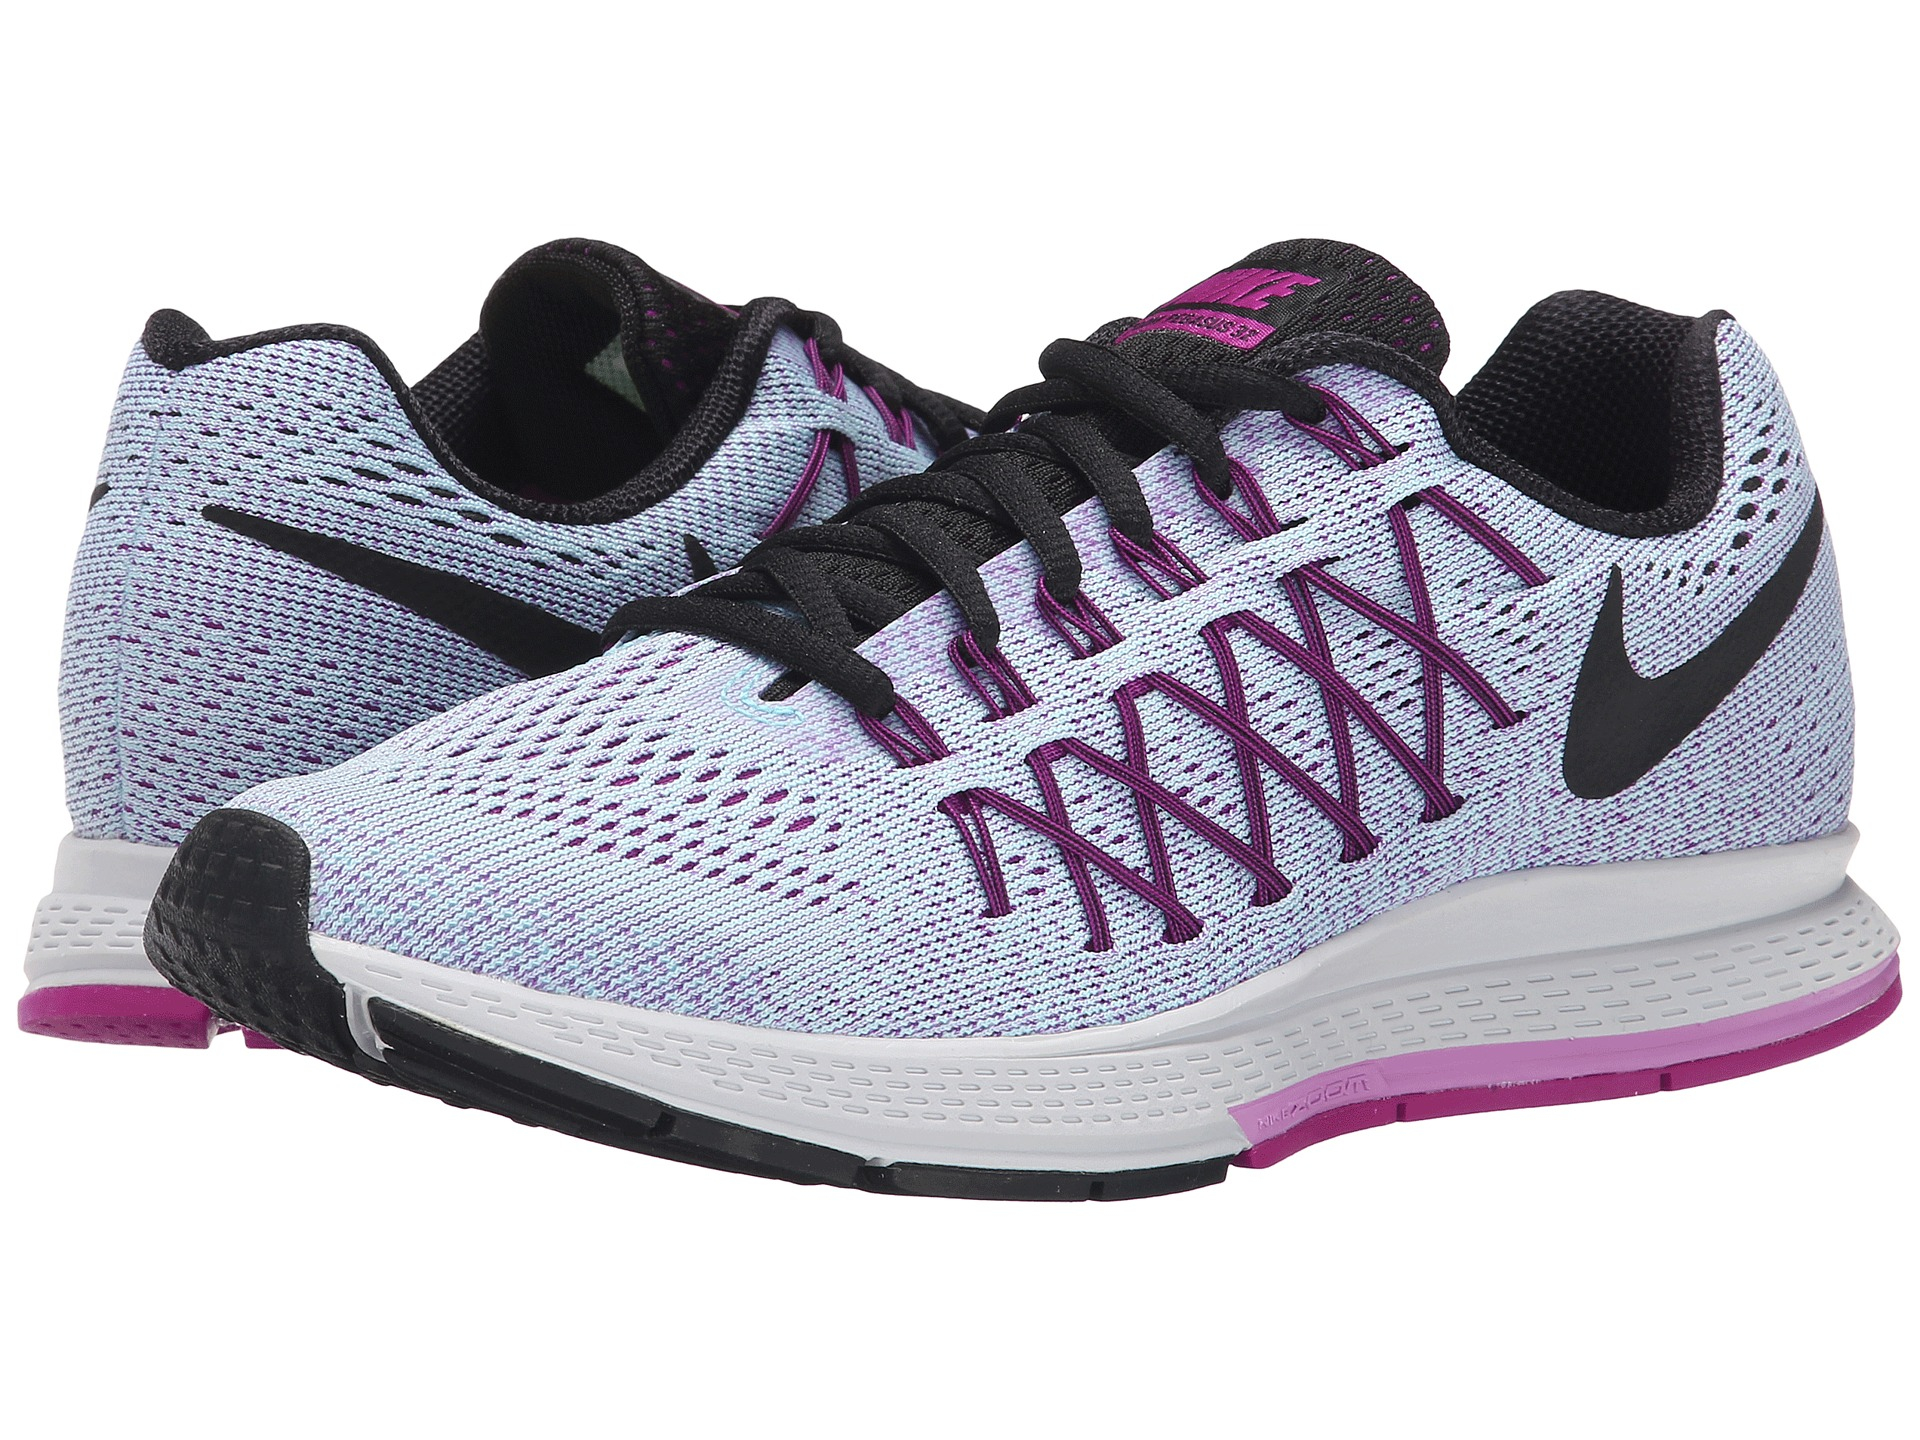 new styles 5d1d8 4ca41 ... womens nike air zoom pegasus 32 flash running shoes . ...